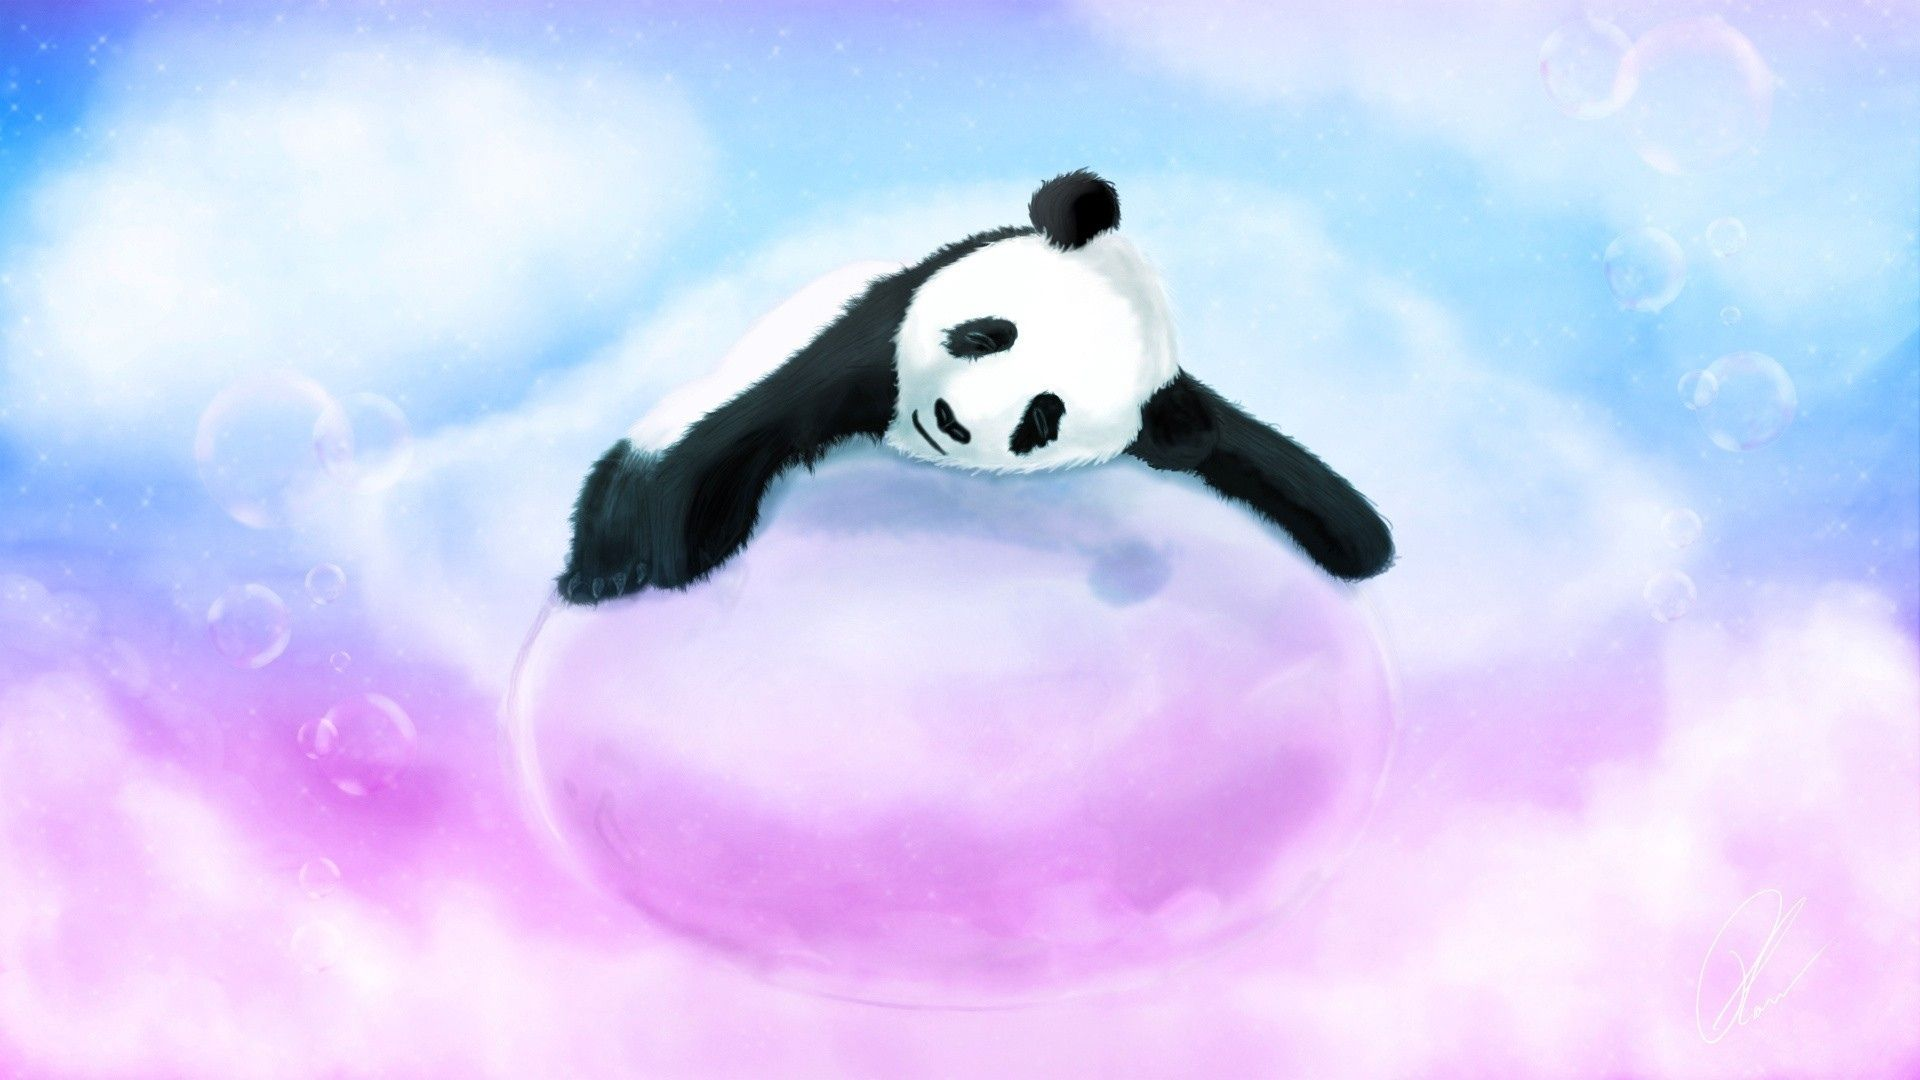 Images of Top Anime Panda Wallpaper - #SC